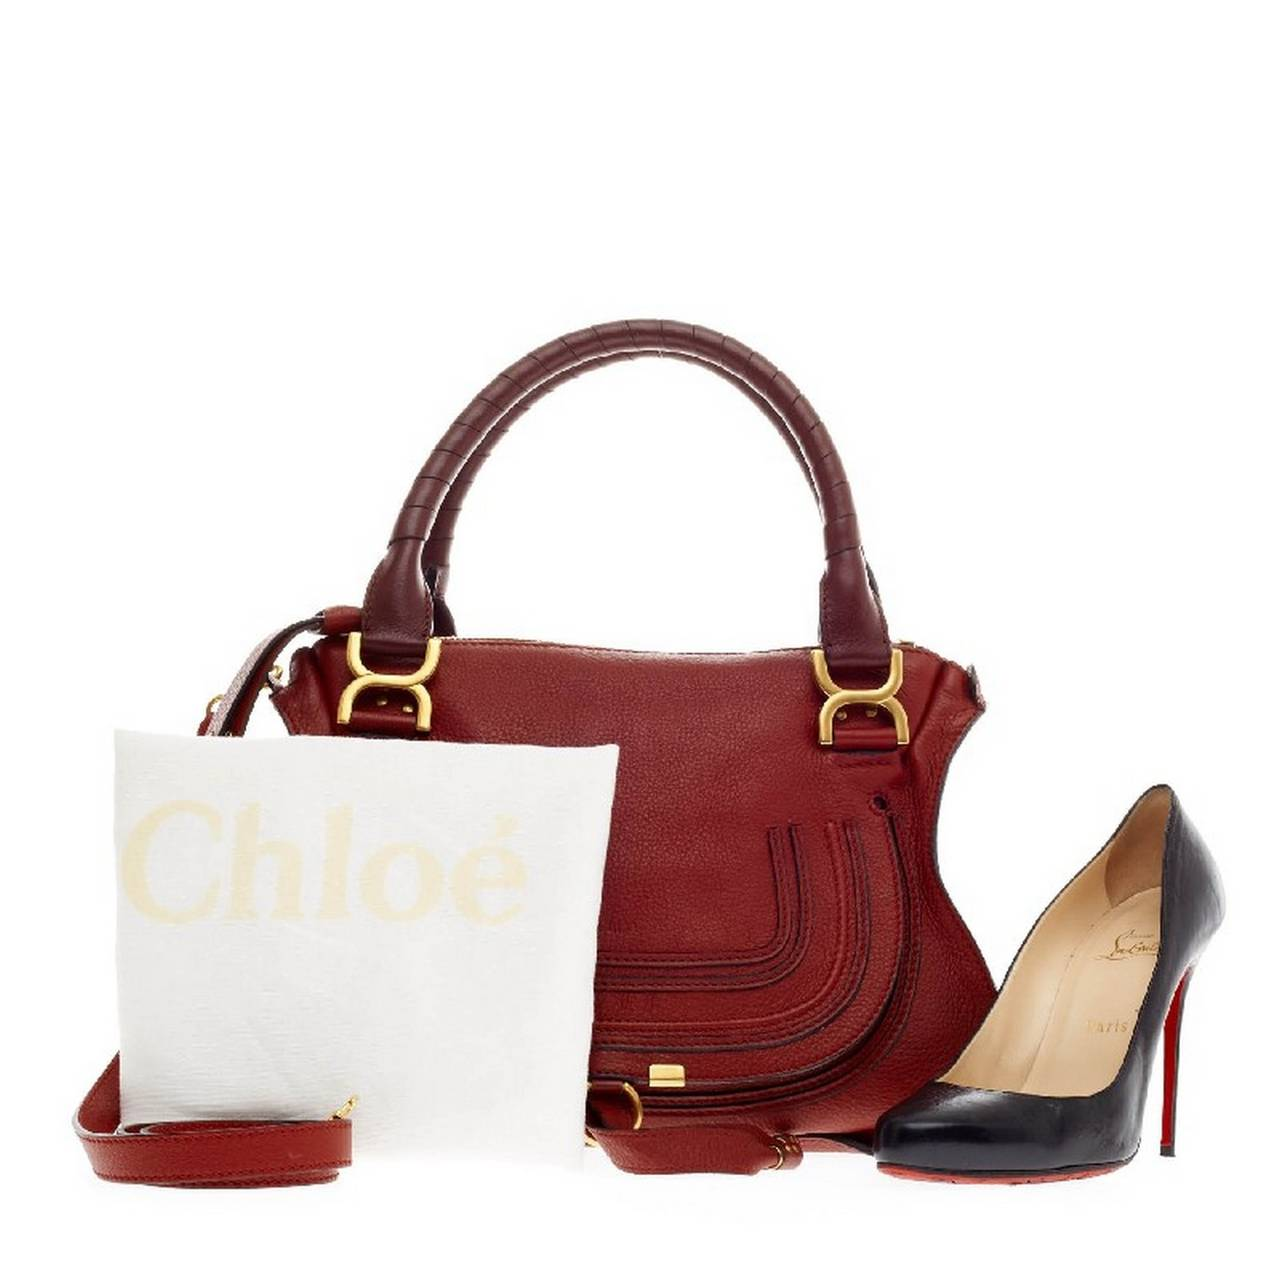 knock off chloe bags - Chloe Marcie Top Handle Bag Leather Small at 1stdibs